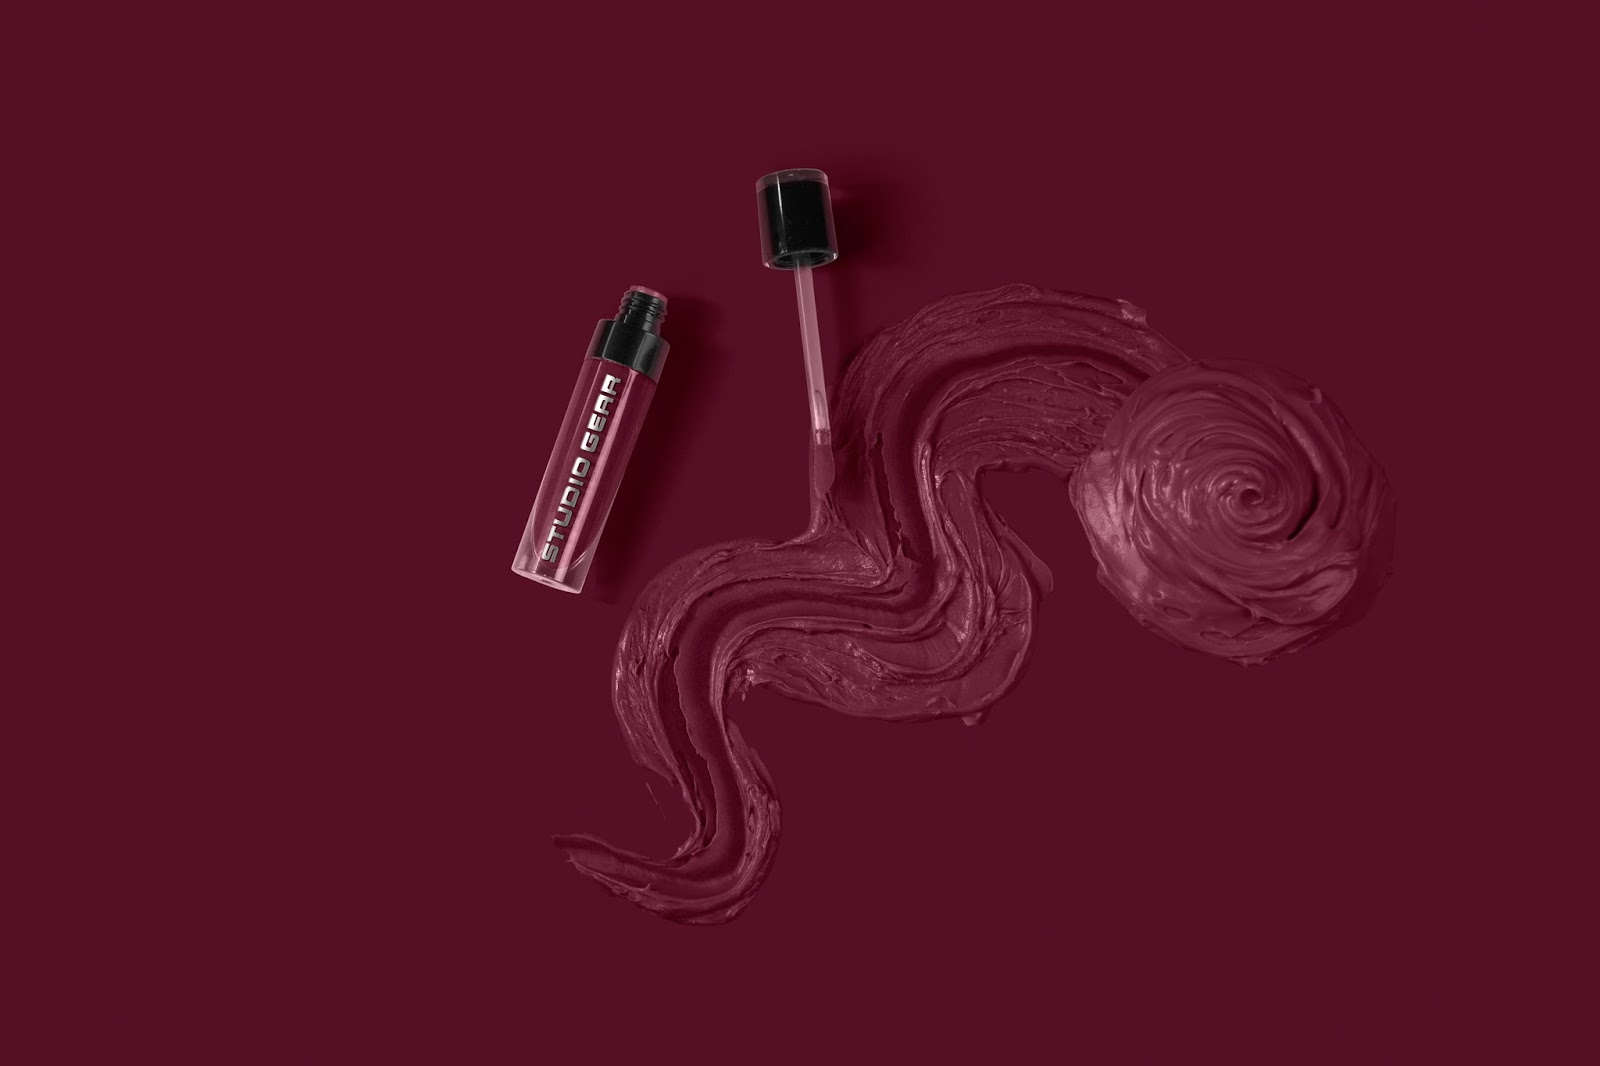 Review Studio Gear True Whpiped Stain Gloss Staingloss Tendencies Pocket Tshirt Logo Misty Moroon Maroon Xxl Cosmetics Is A Prestigious Brand Featuring Full Collection Of Professional Makeup Brushes Revolutionizing Complexion Formulas And